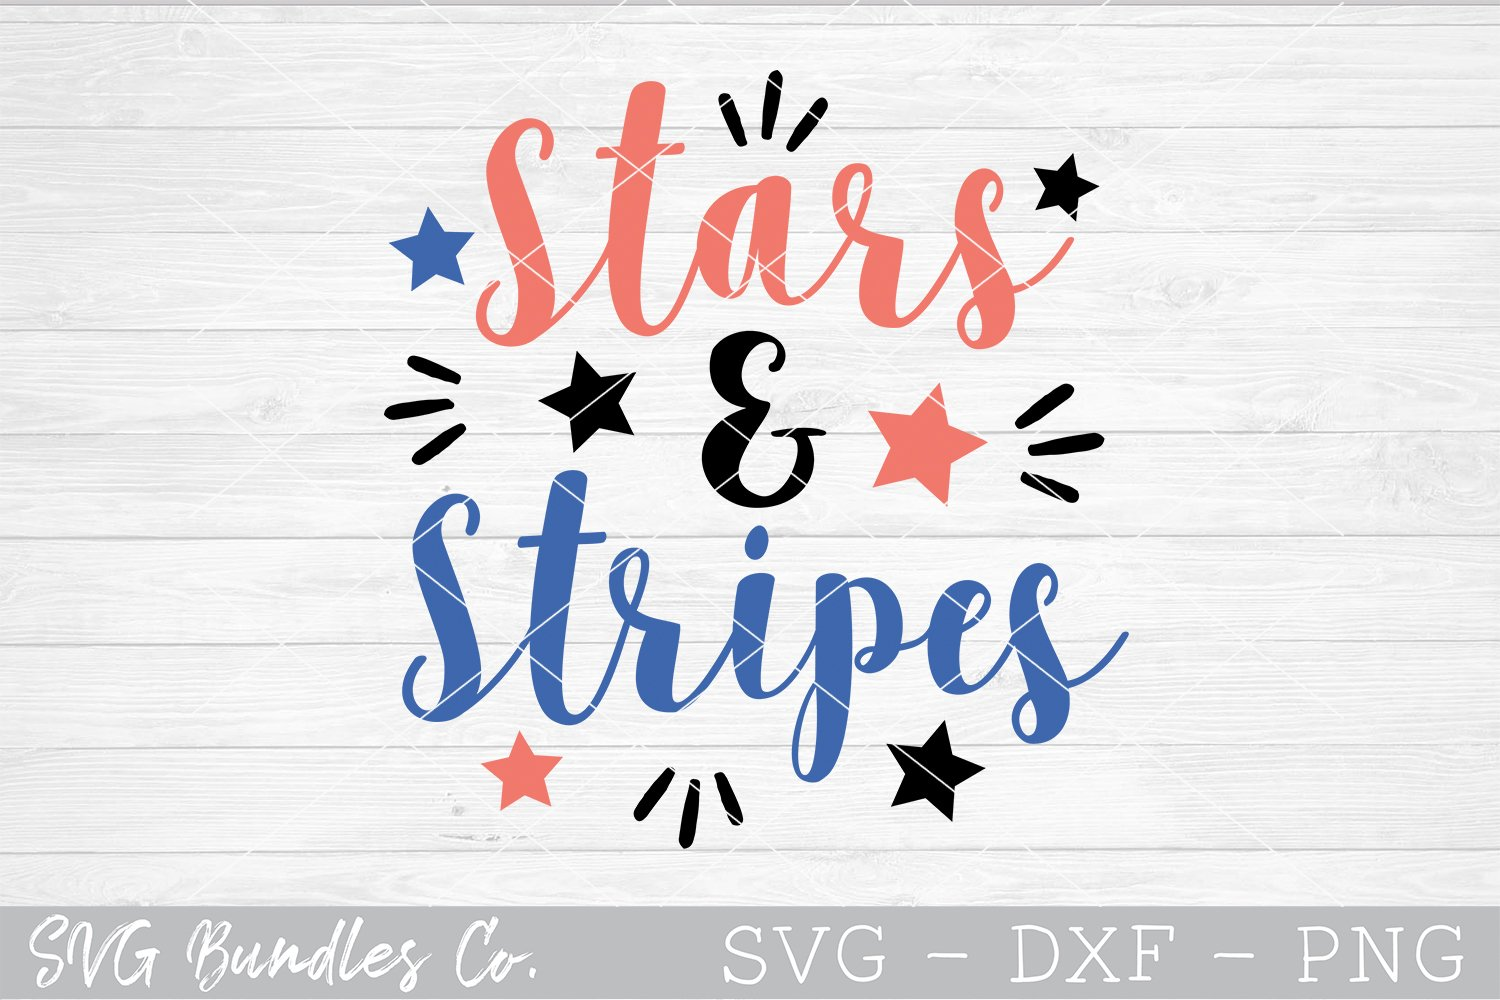 Stars & Stripes - 4th of July SVG DXF PNG example image 1